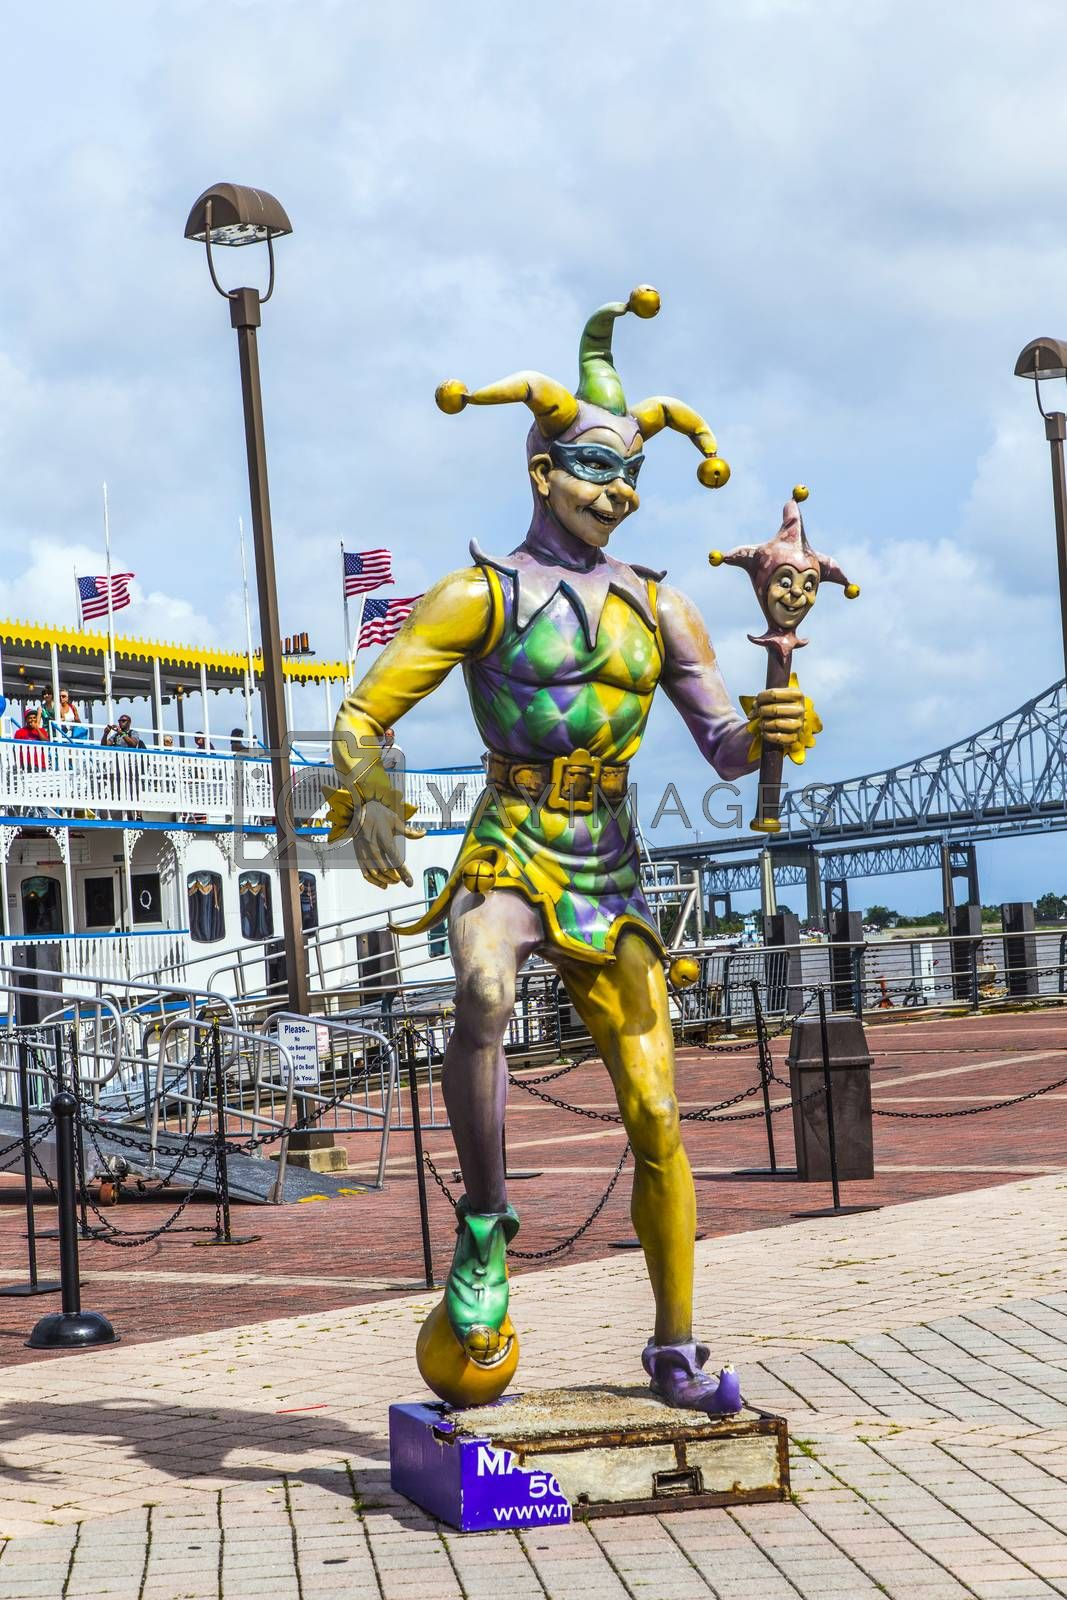 NEW ORLEANS - JULY 16, 2013: people at the creole Queen steam boat in New Orleans, USA. The Jester, symbol for Mardy Gras, stands in front.